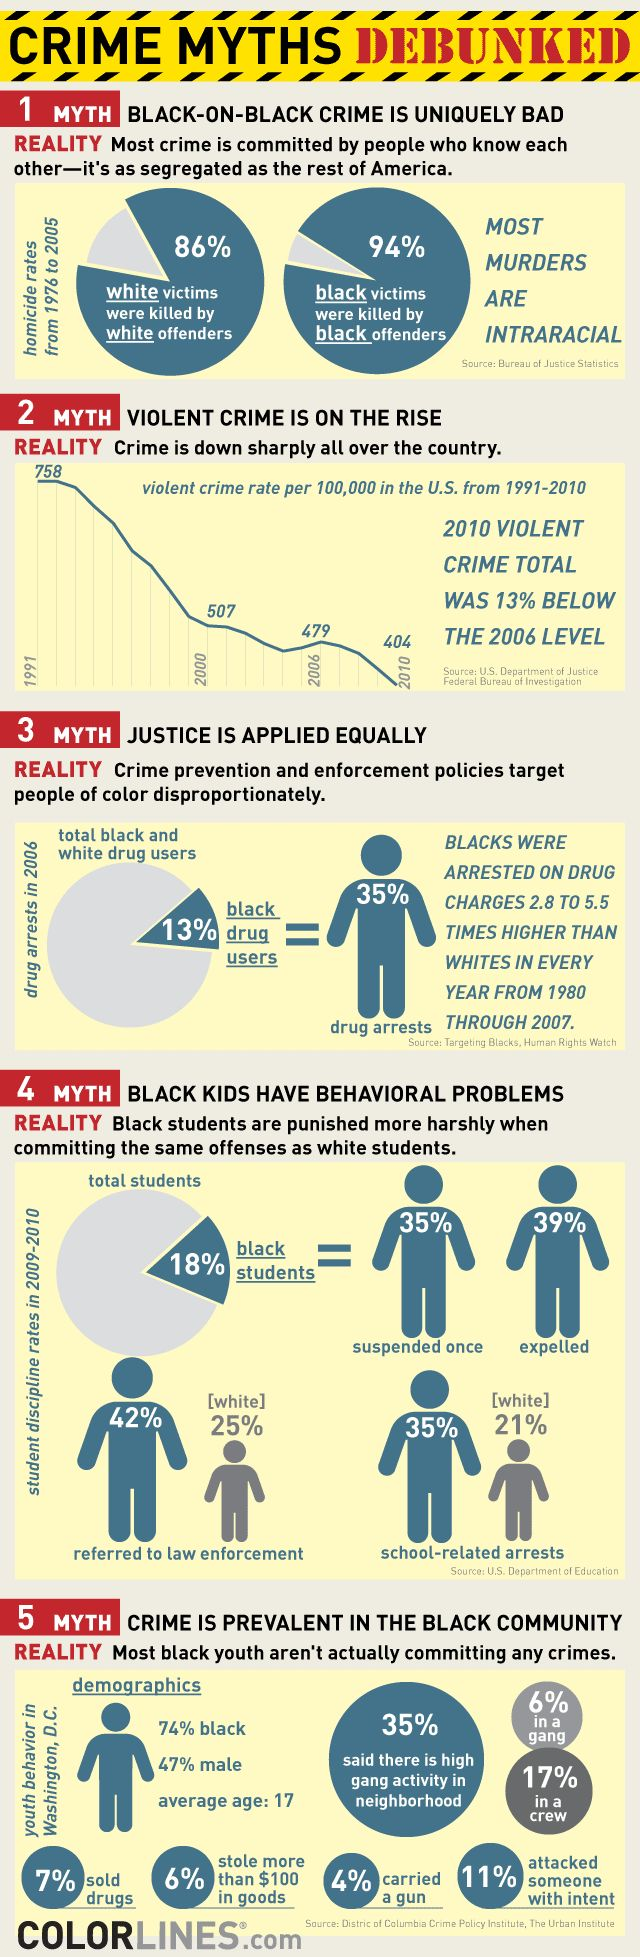 5 Black Crime Myths: Which Ones Did You Believe?    Facts can sometimes prove to be the difference between life and death. We need to look no further than Trayvon Martin's case to see the difference between perception and reality when it comes to criminal activity and race. Let's start educating ourselves and our society. Please share.